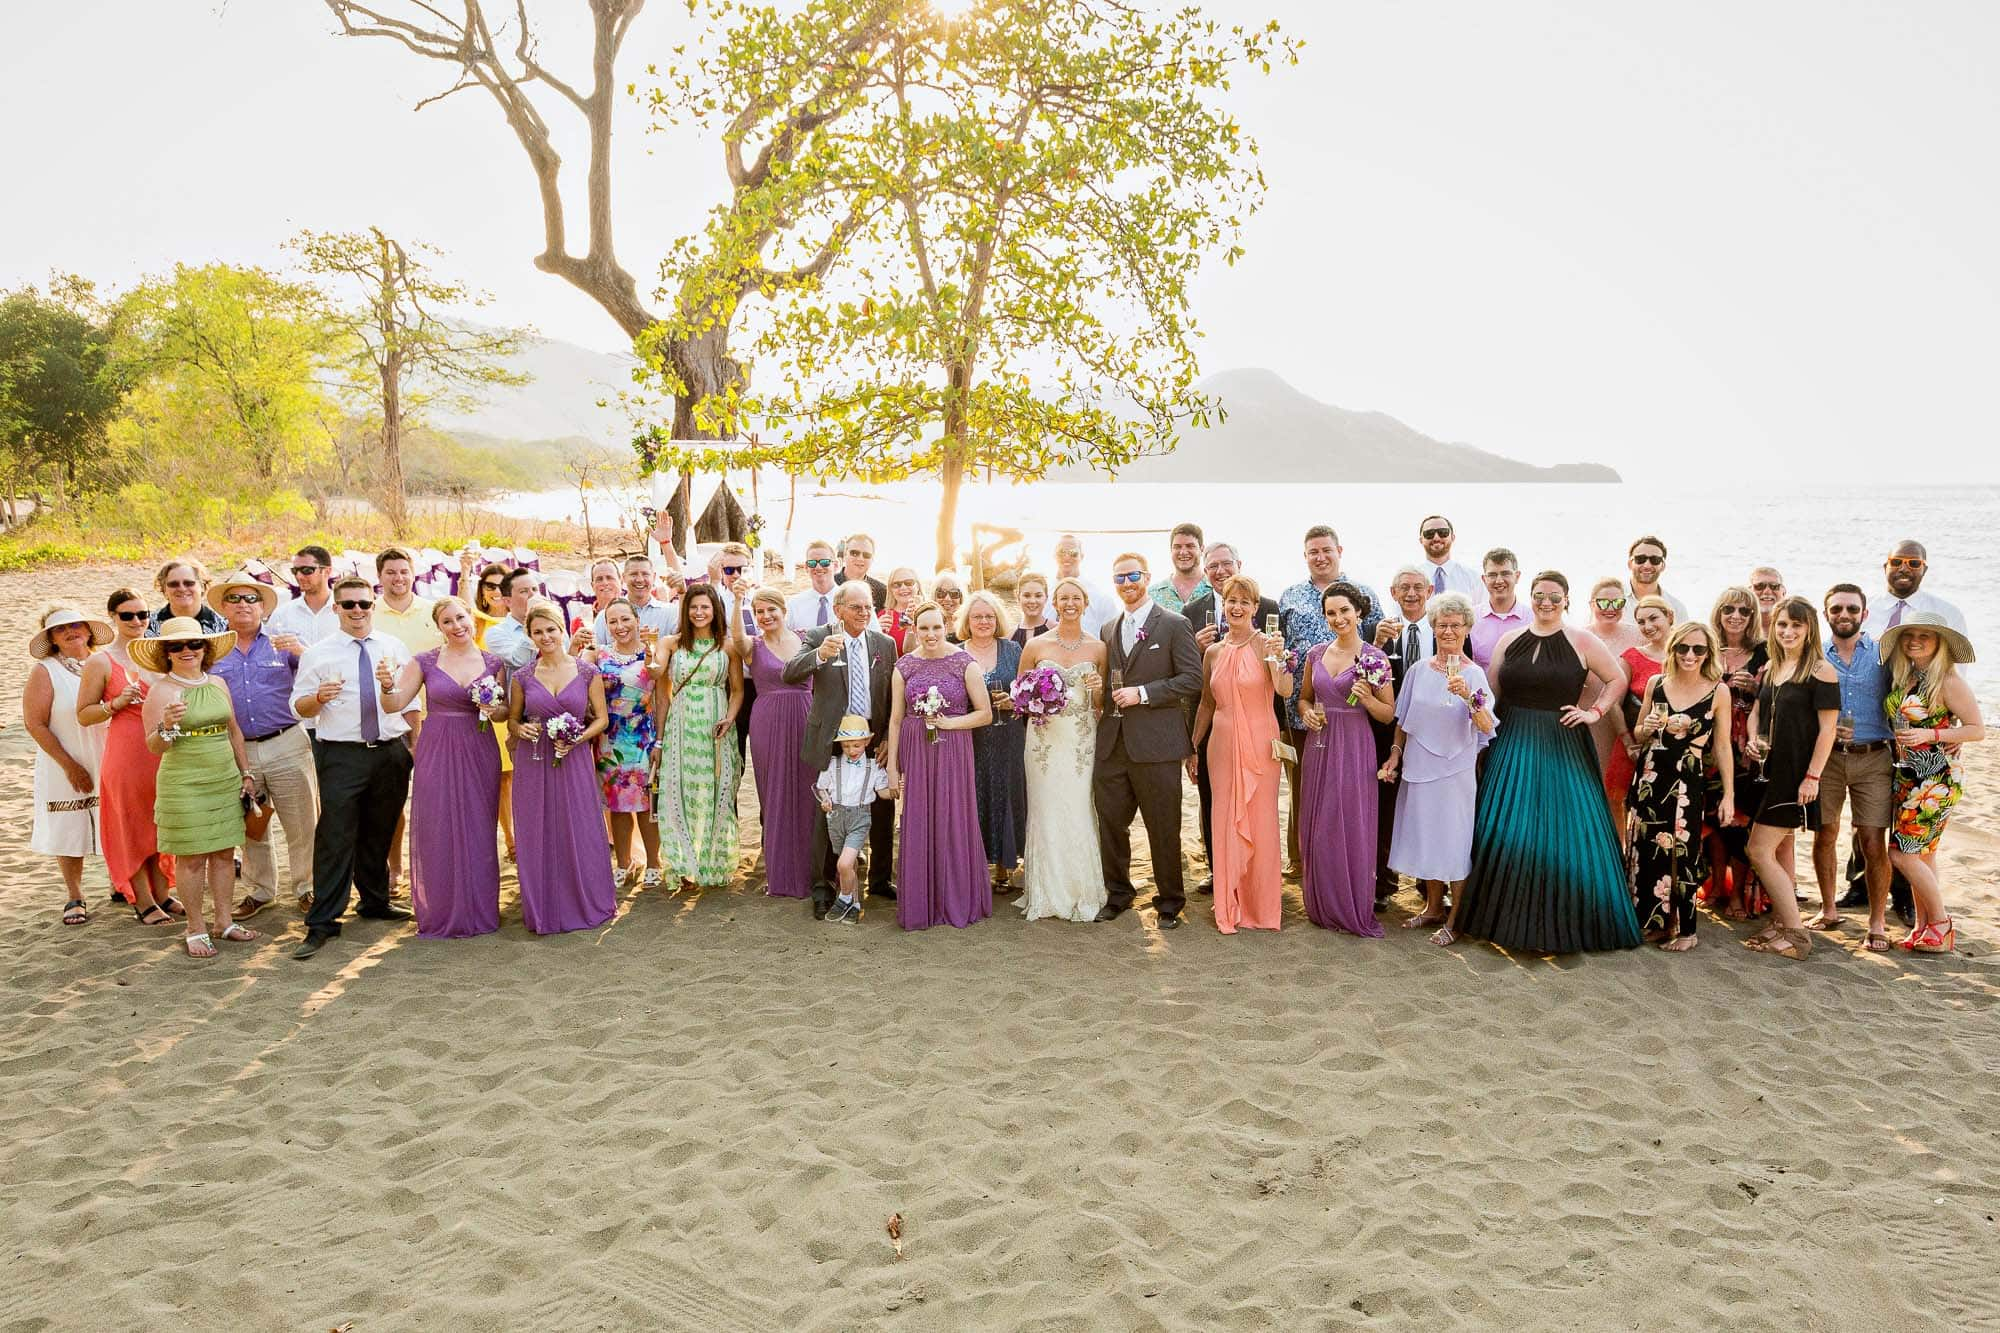 group photo on beach after wedding at riu palace costa rica